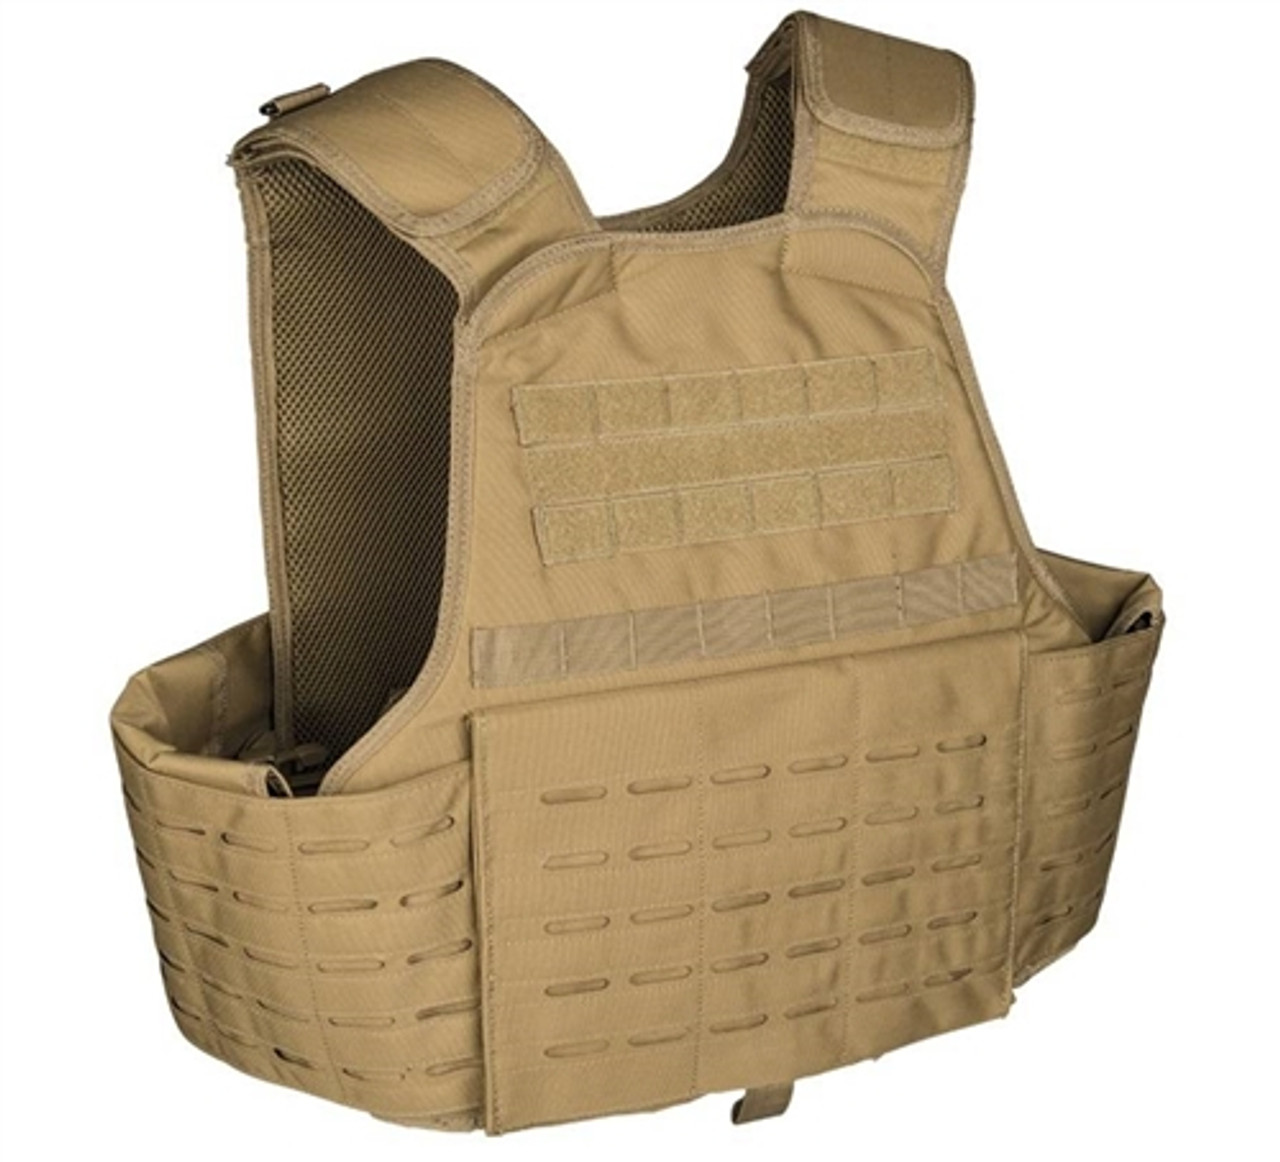 Coyote Laser Cut Plate Carrier Vest from Hessen Antique